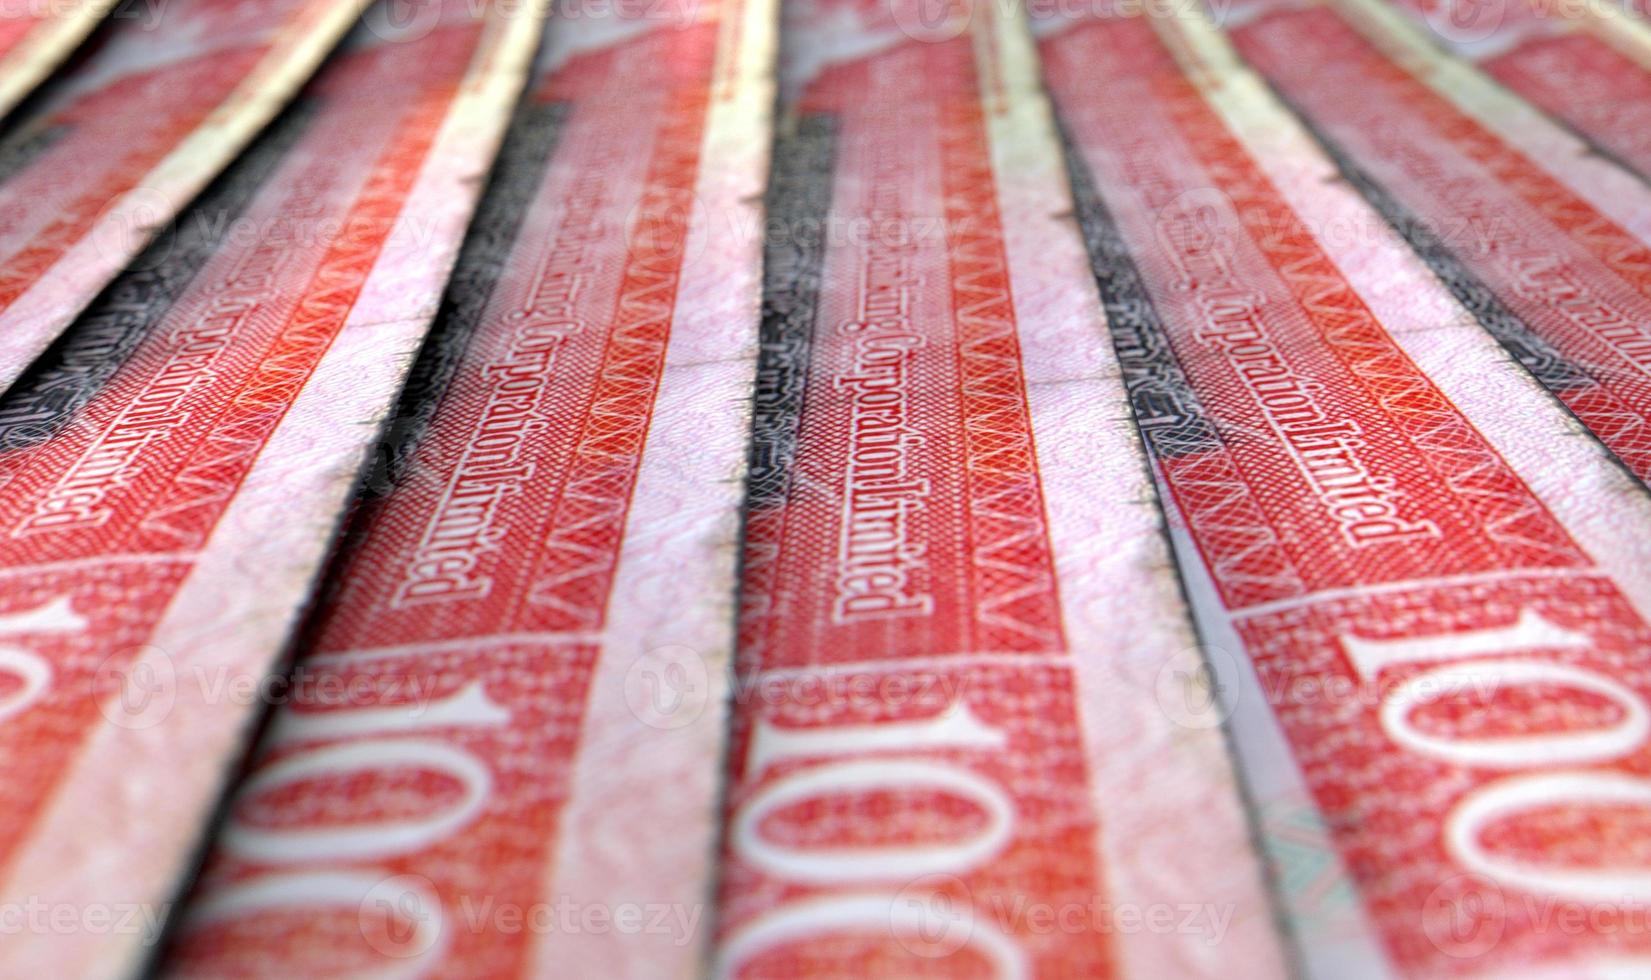 Lined Up Close-Up Banknotes photo